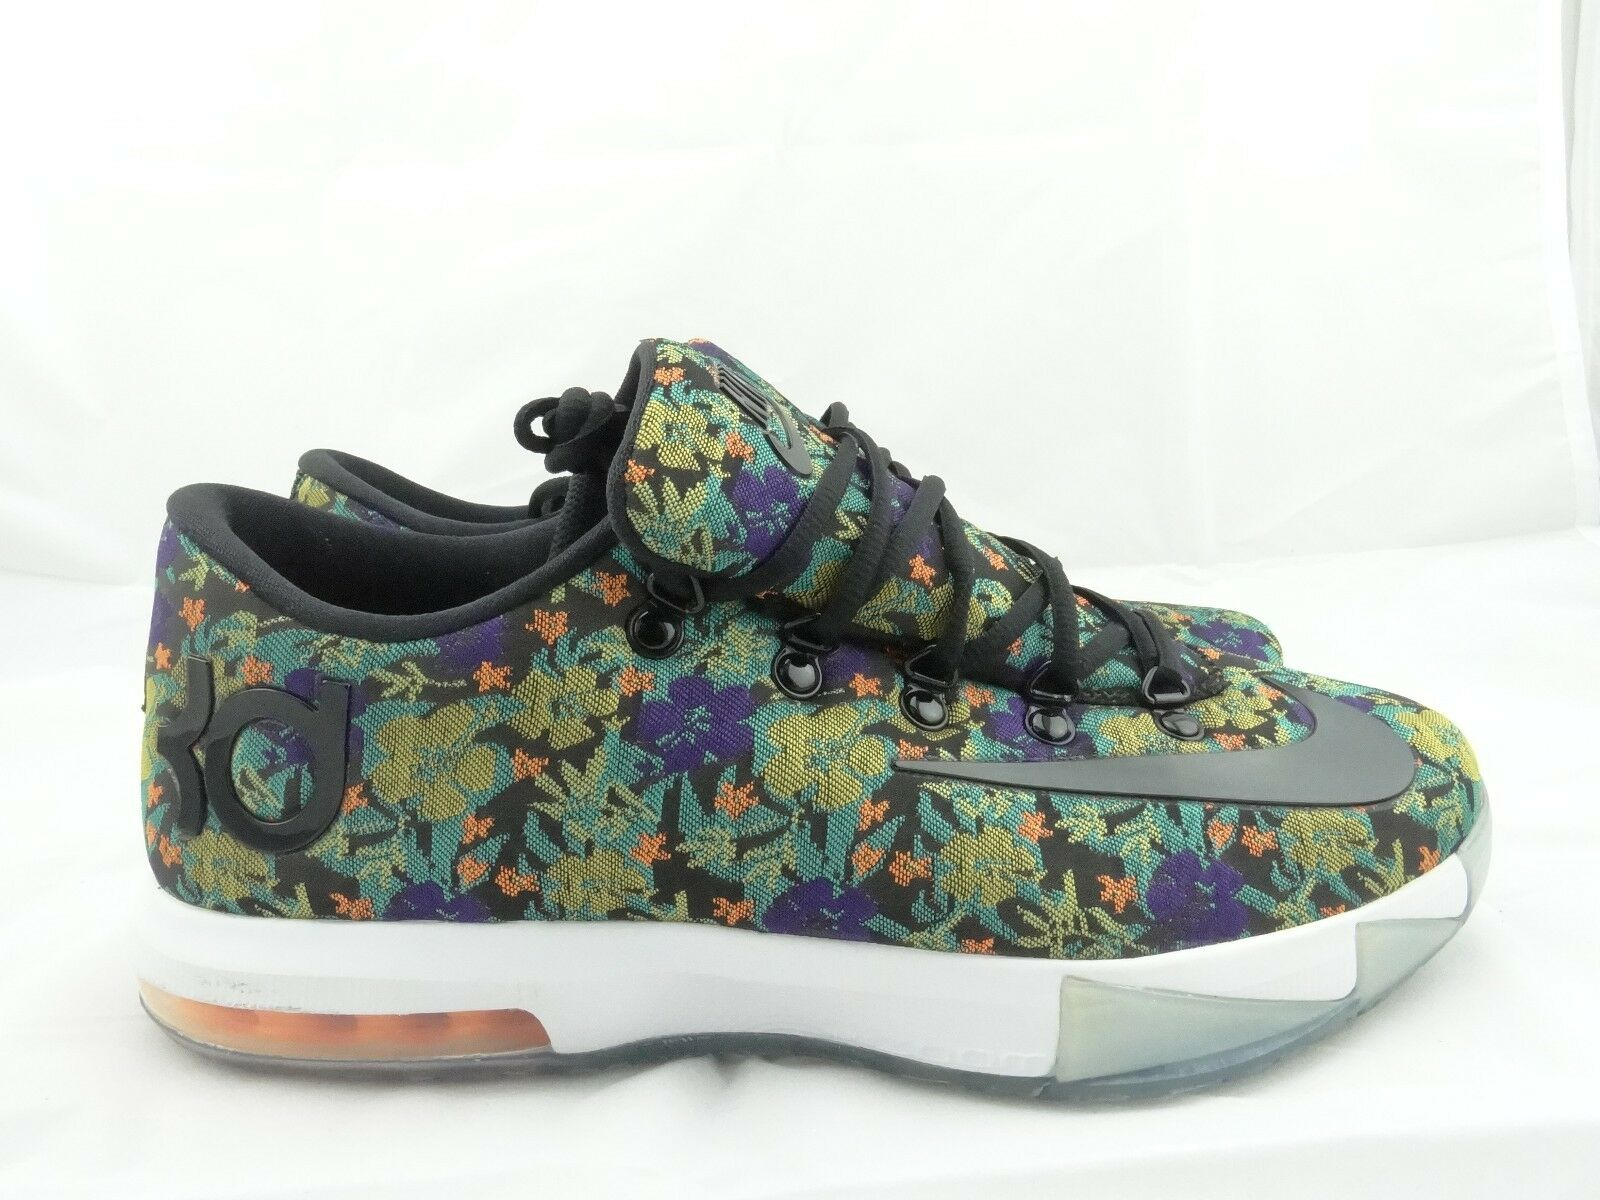 Sample Nike KD 6 FLORAL EXT QS  652120-900  Durant,  Nerf,  Weatherman, Galaxy